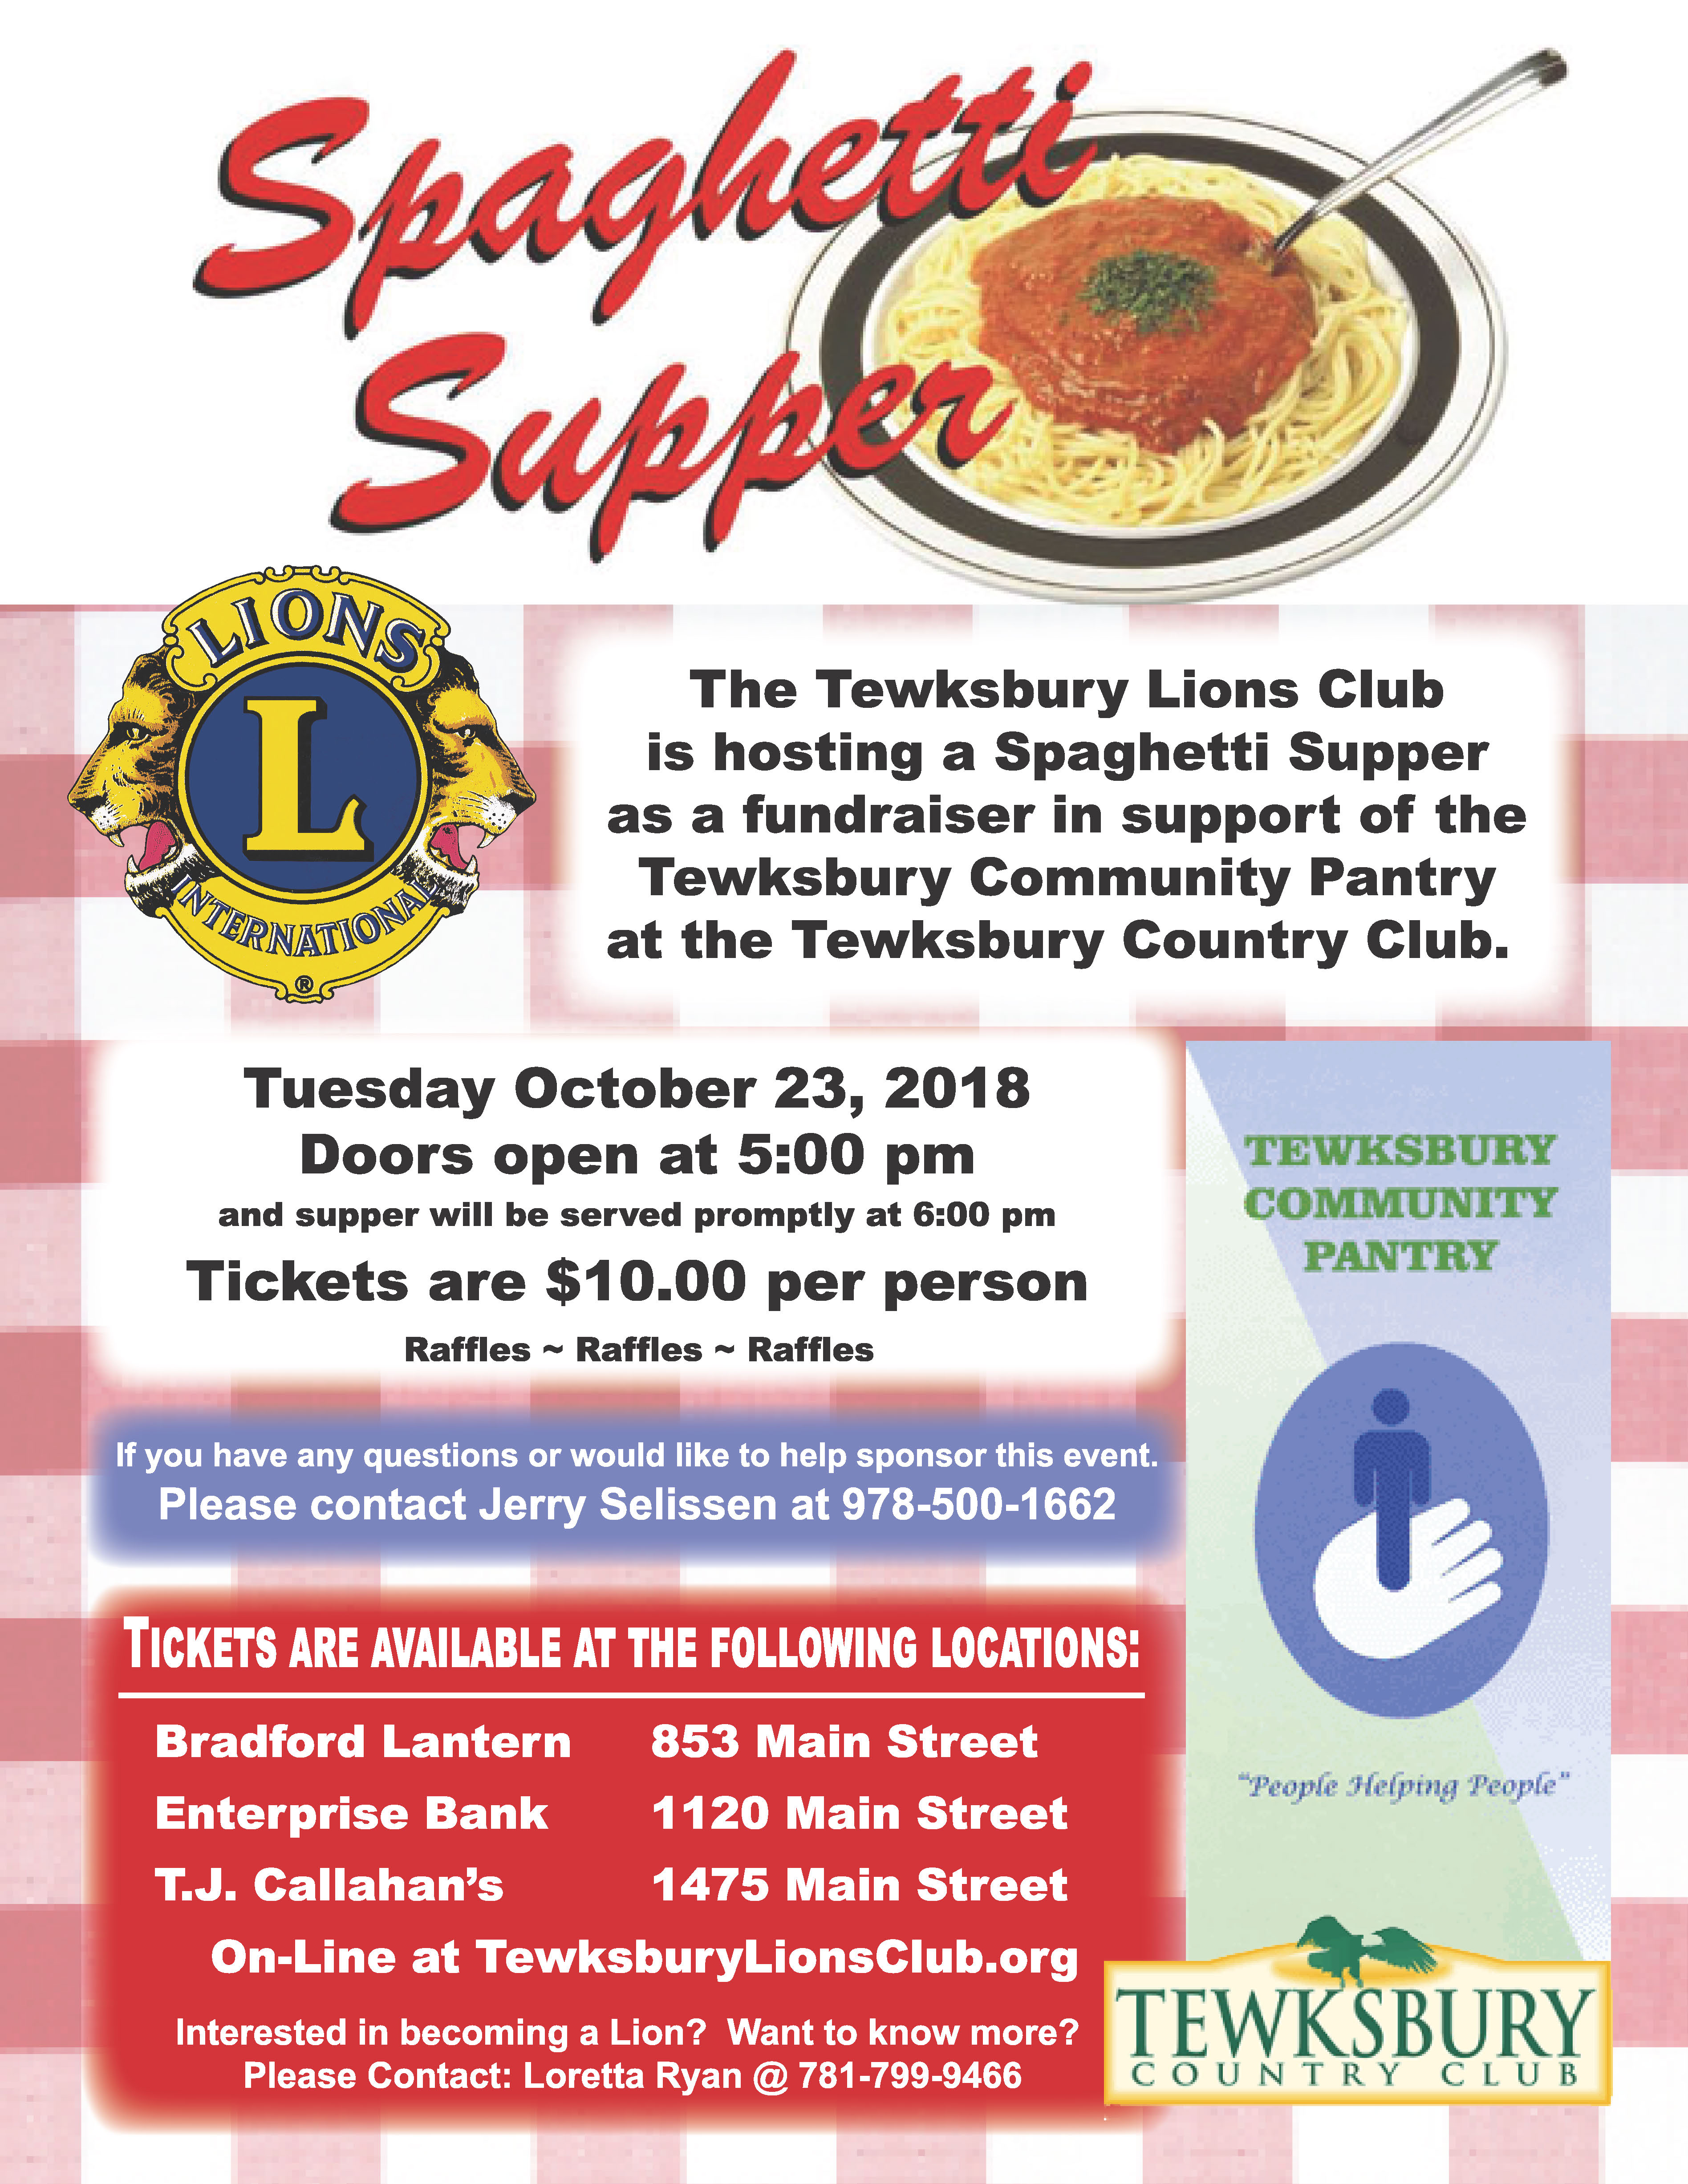 2018 Spaghetti Supper Fundraiser